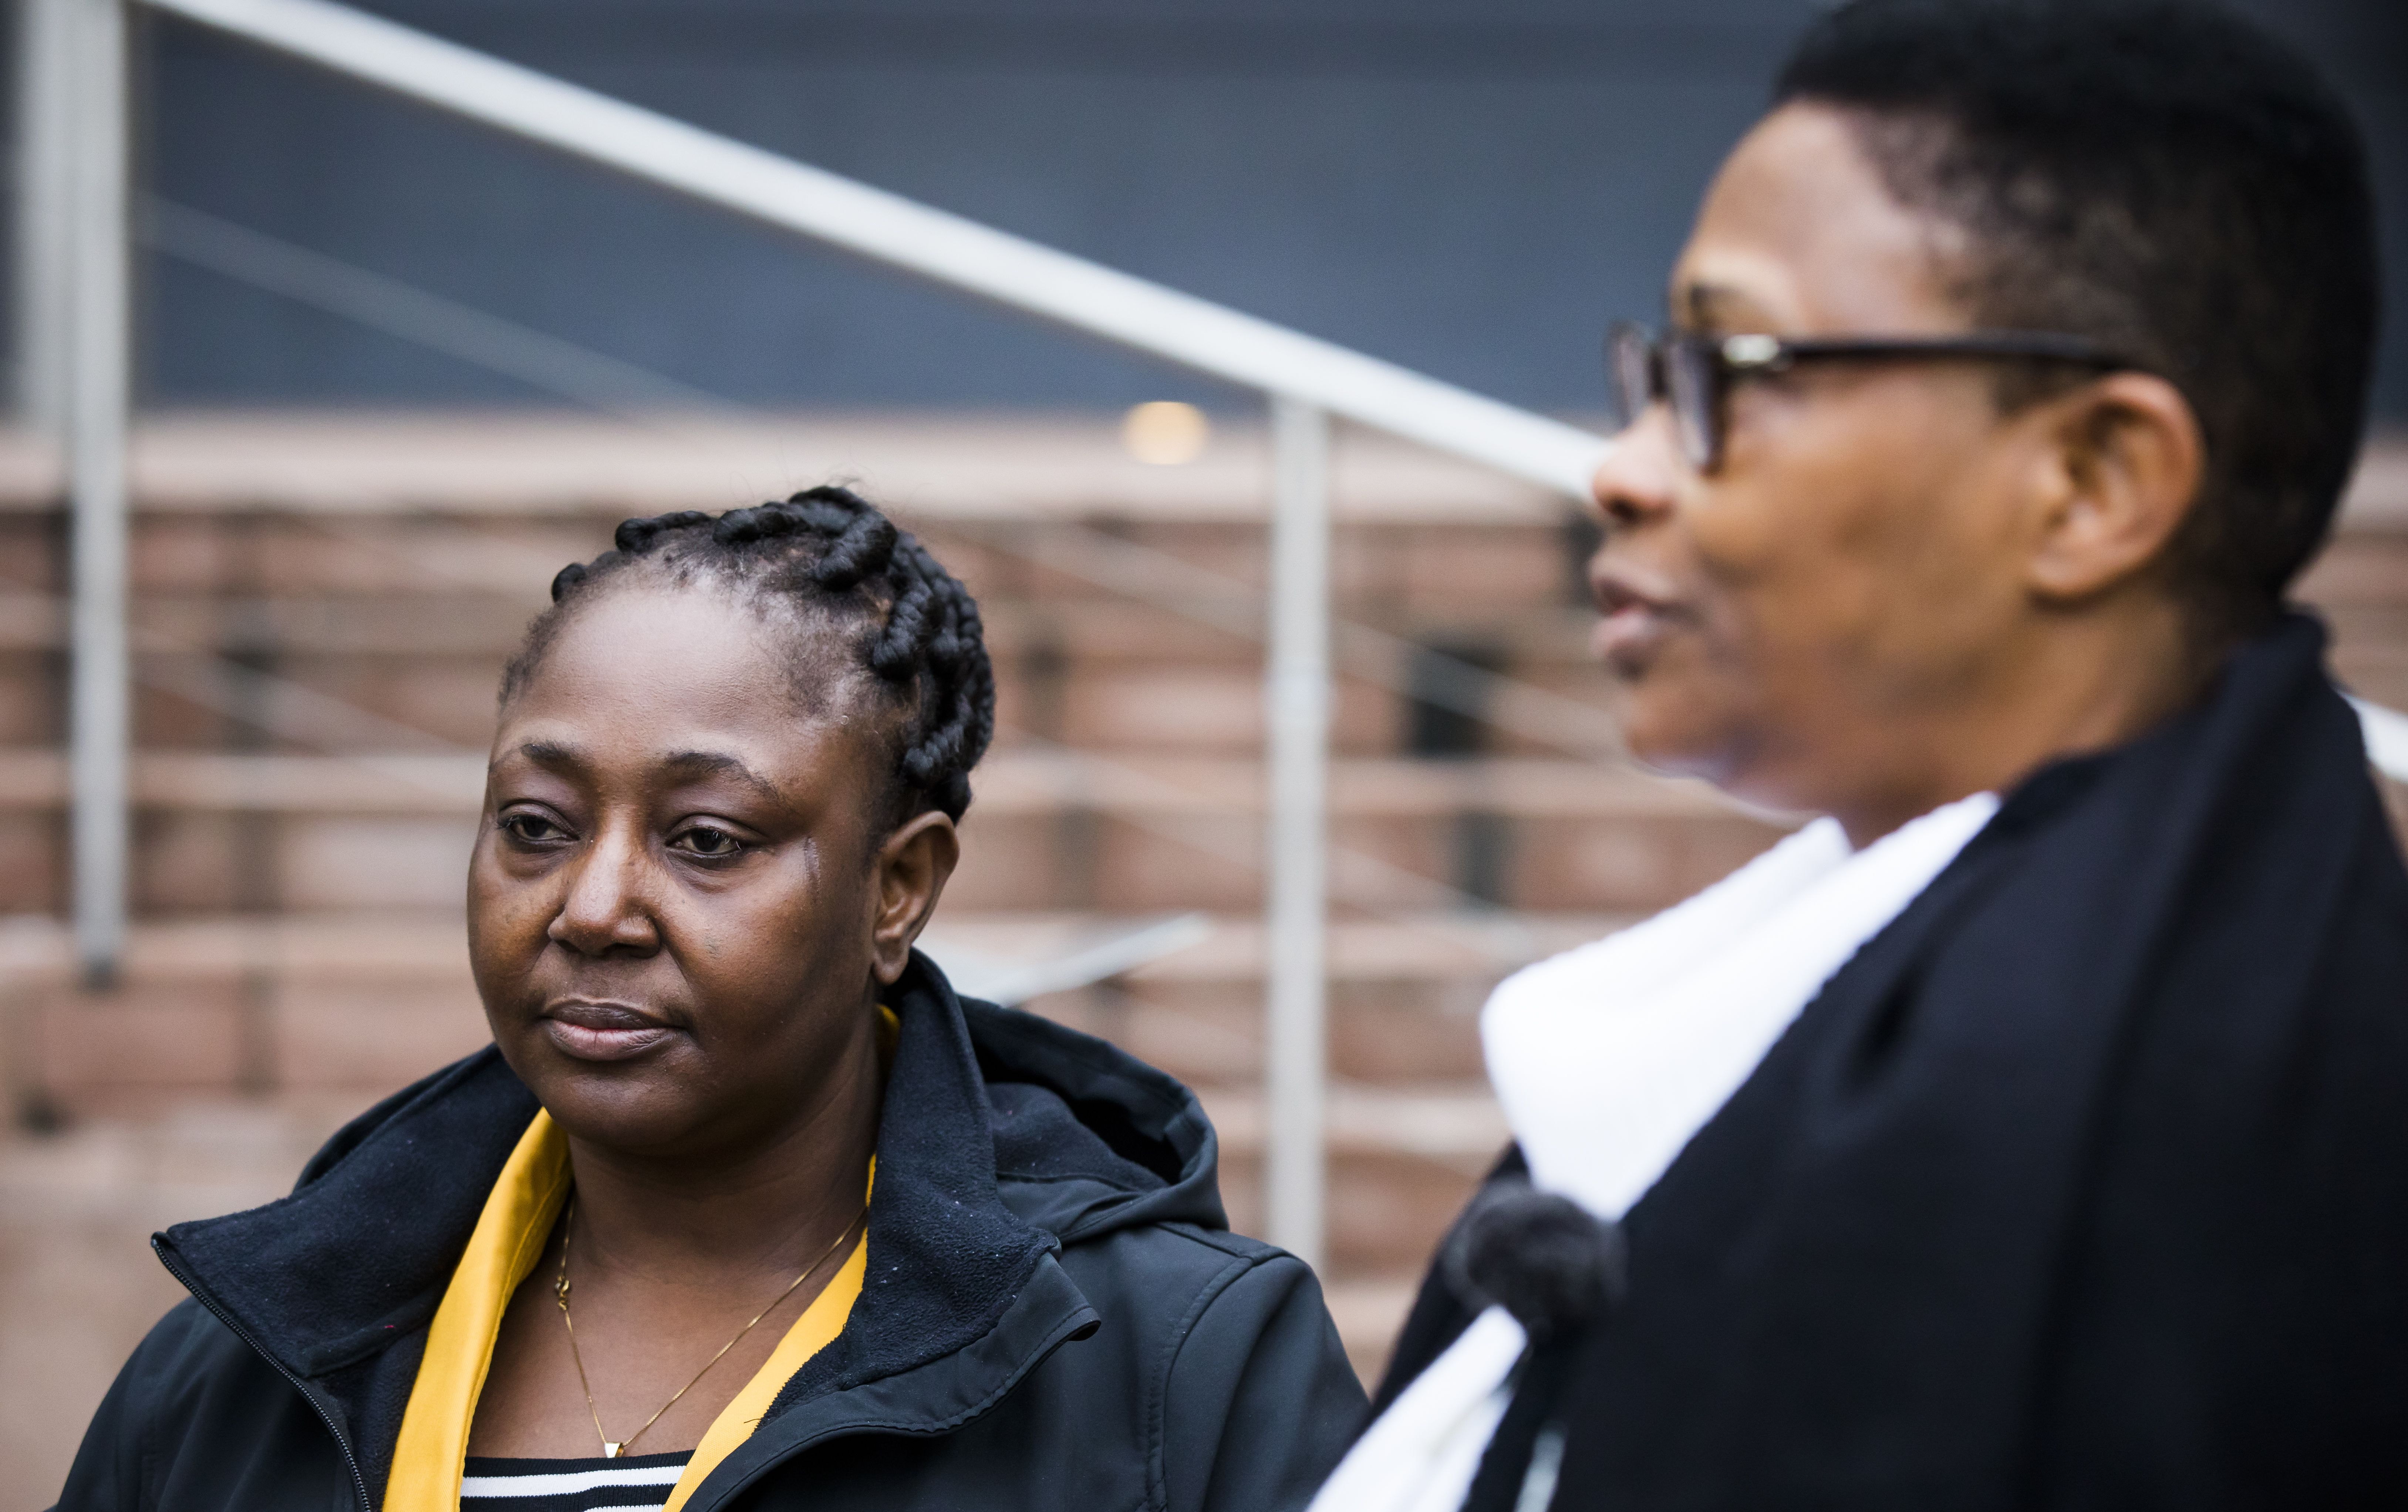 Victoria Bera (L) and Esther Kiobel, two of the widows who's husbands died by executions in 1995, stand outside The Hague courthouse on February 12, 2019. (BART MAAT/AFP/Getty Images)